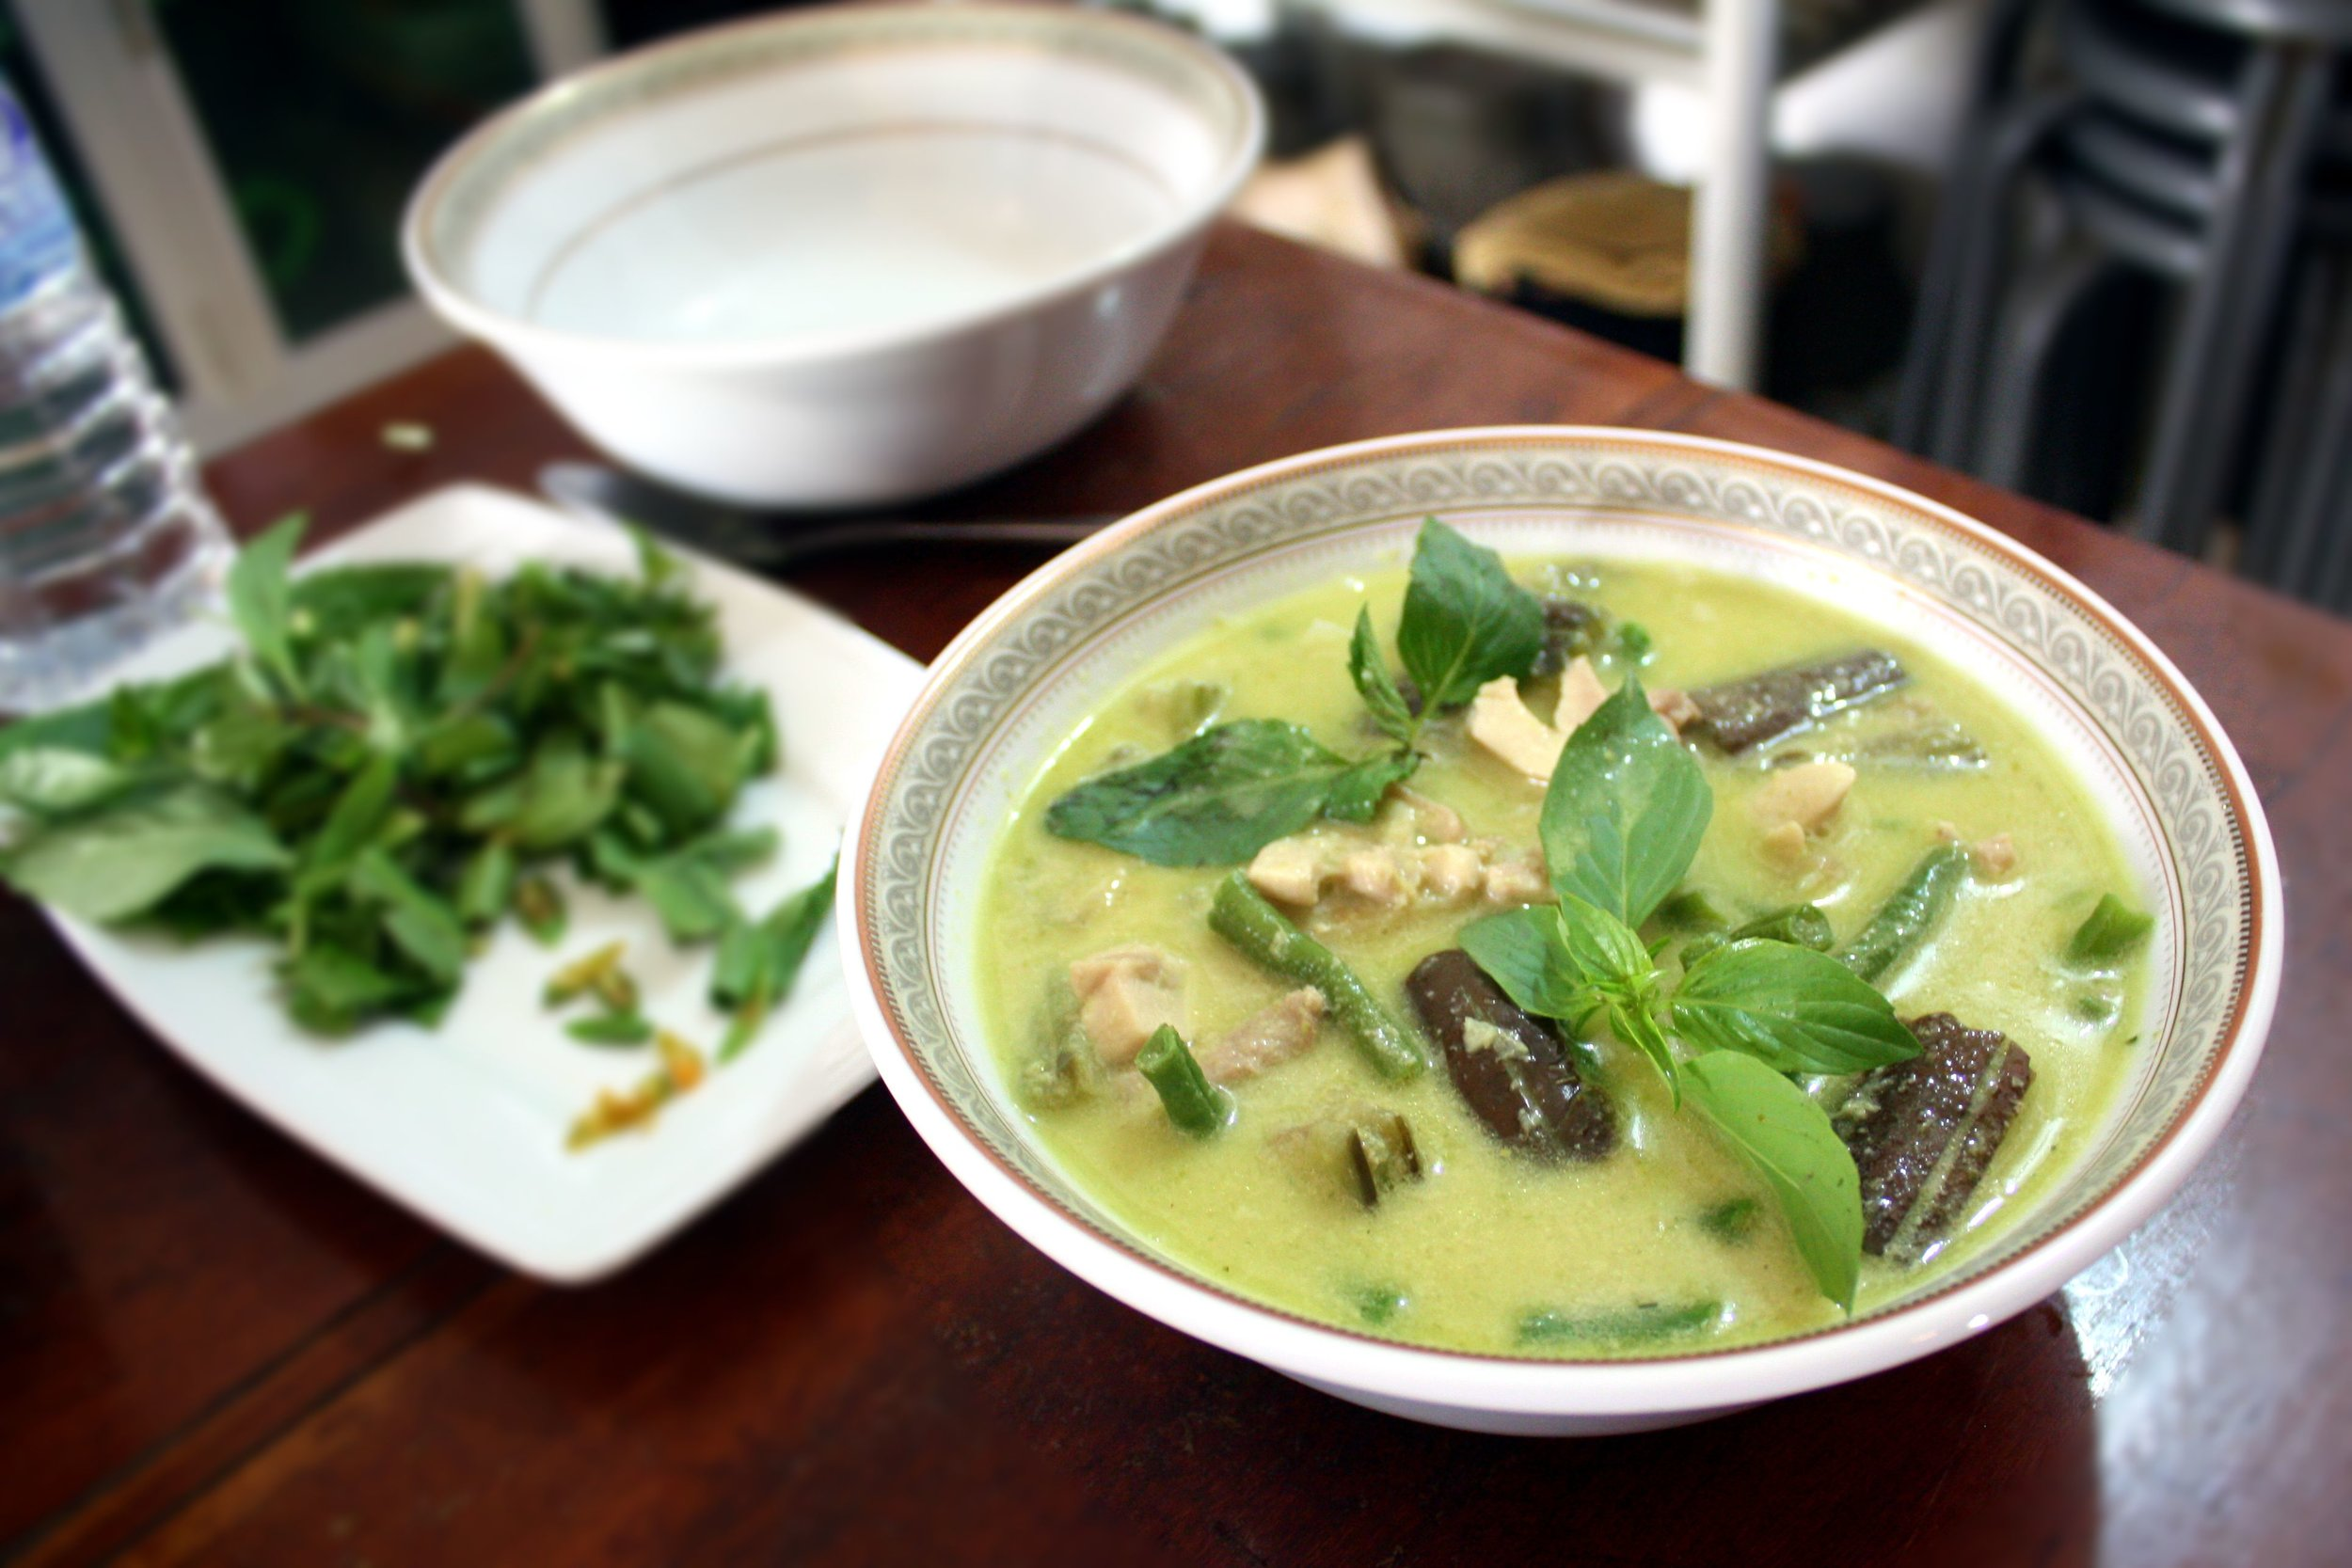 Green curry is complete!